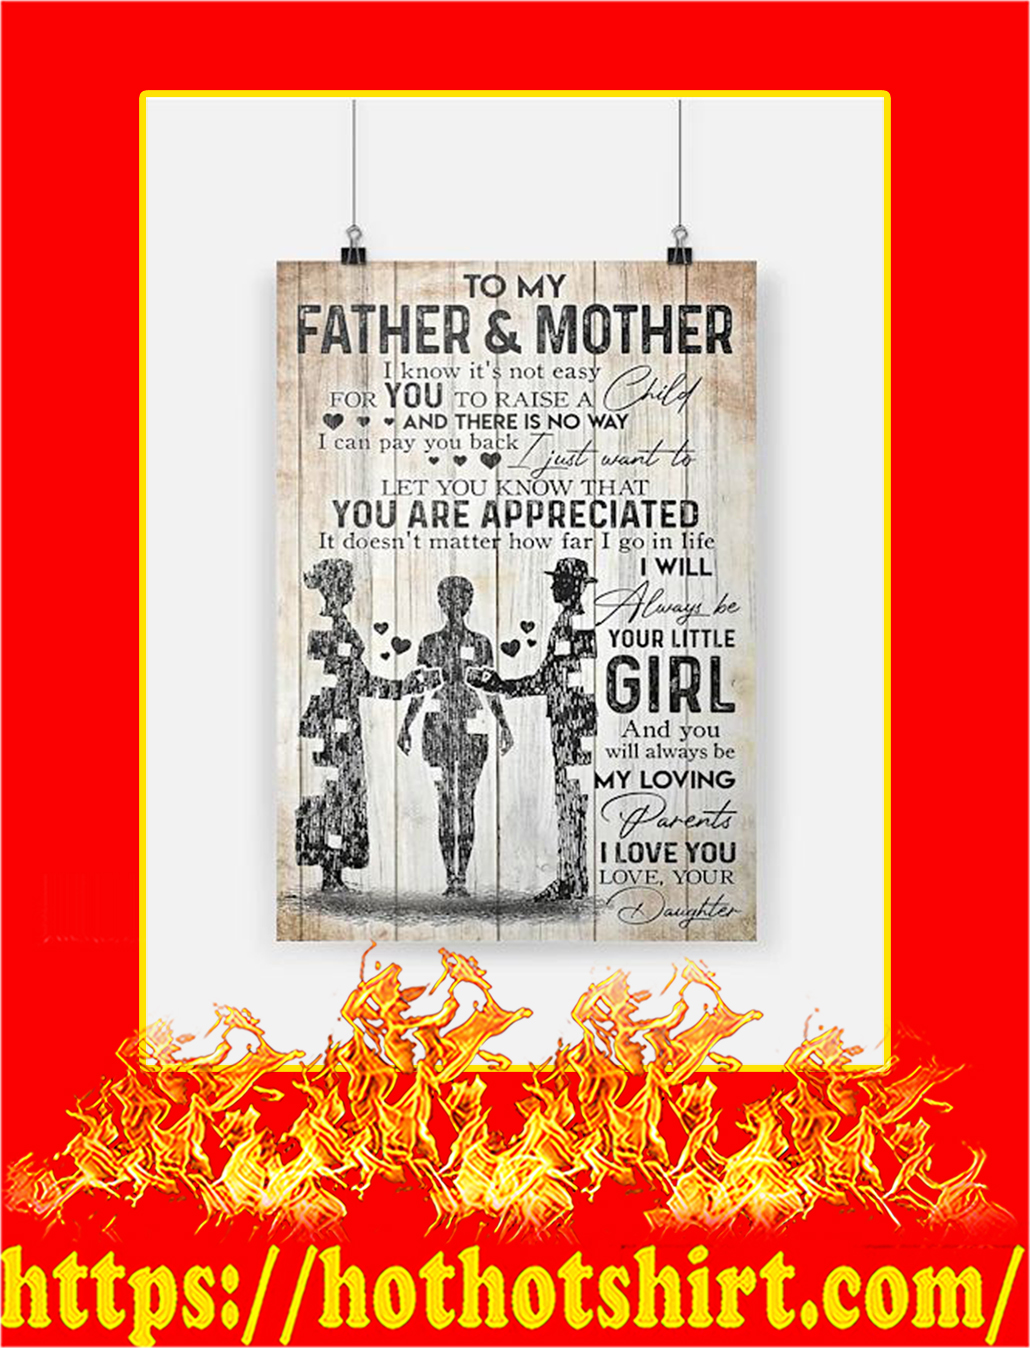 To My Father And Mother Daughter Poster - A4